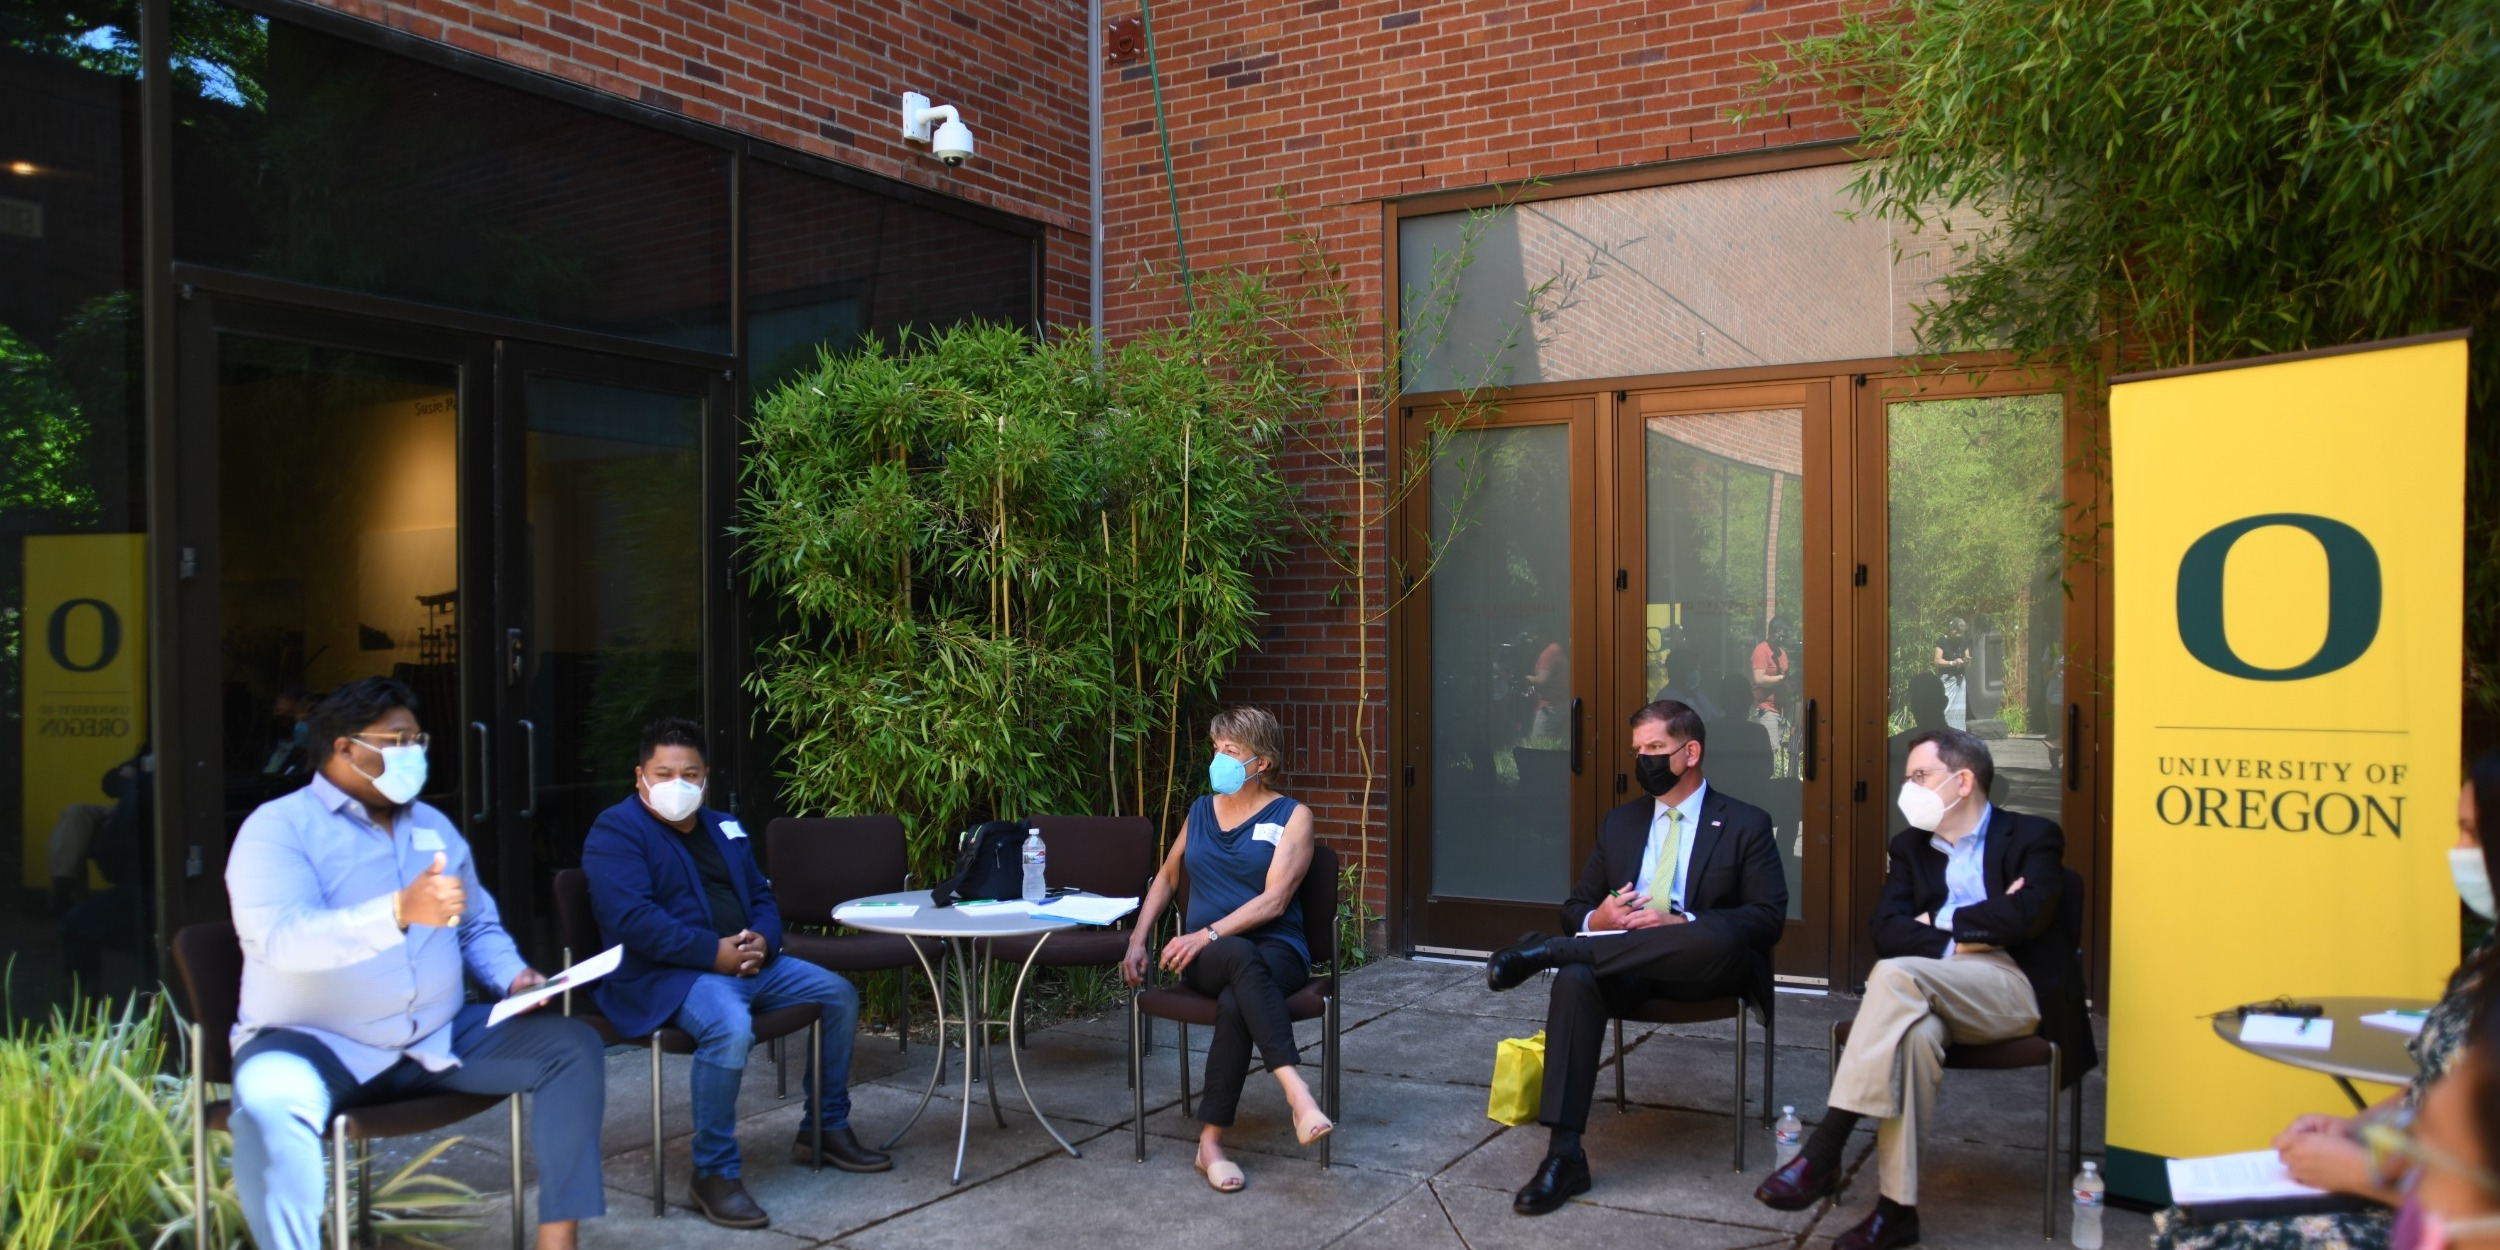 President Schill, Secretary Wash, and three others sit in a courtyard during a roundtable discussion.